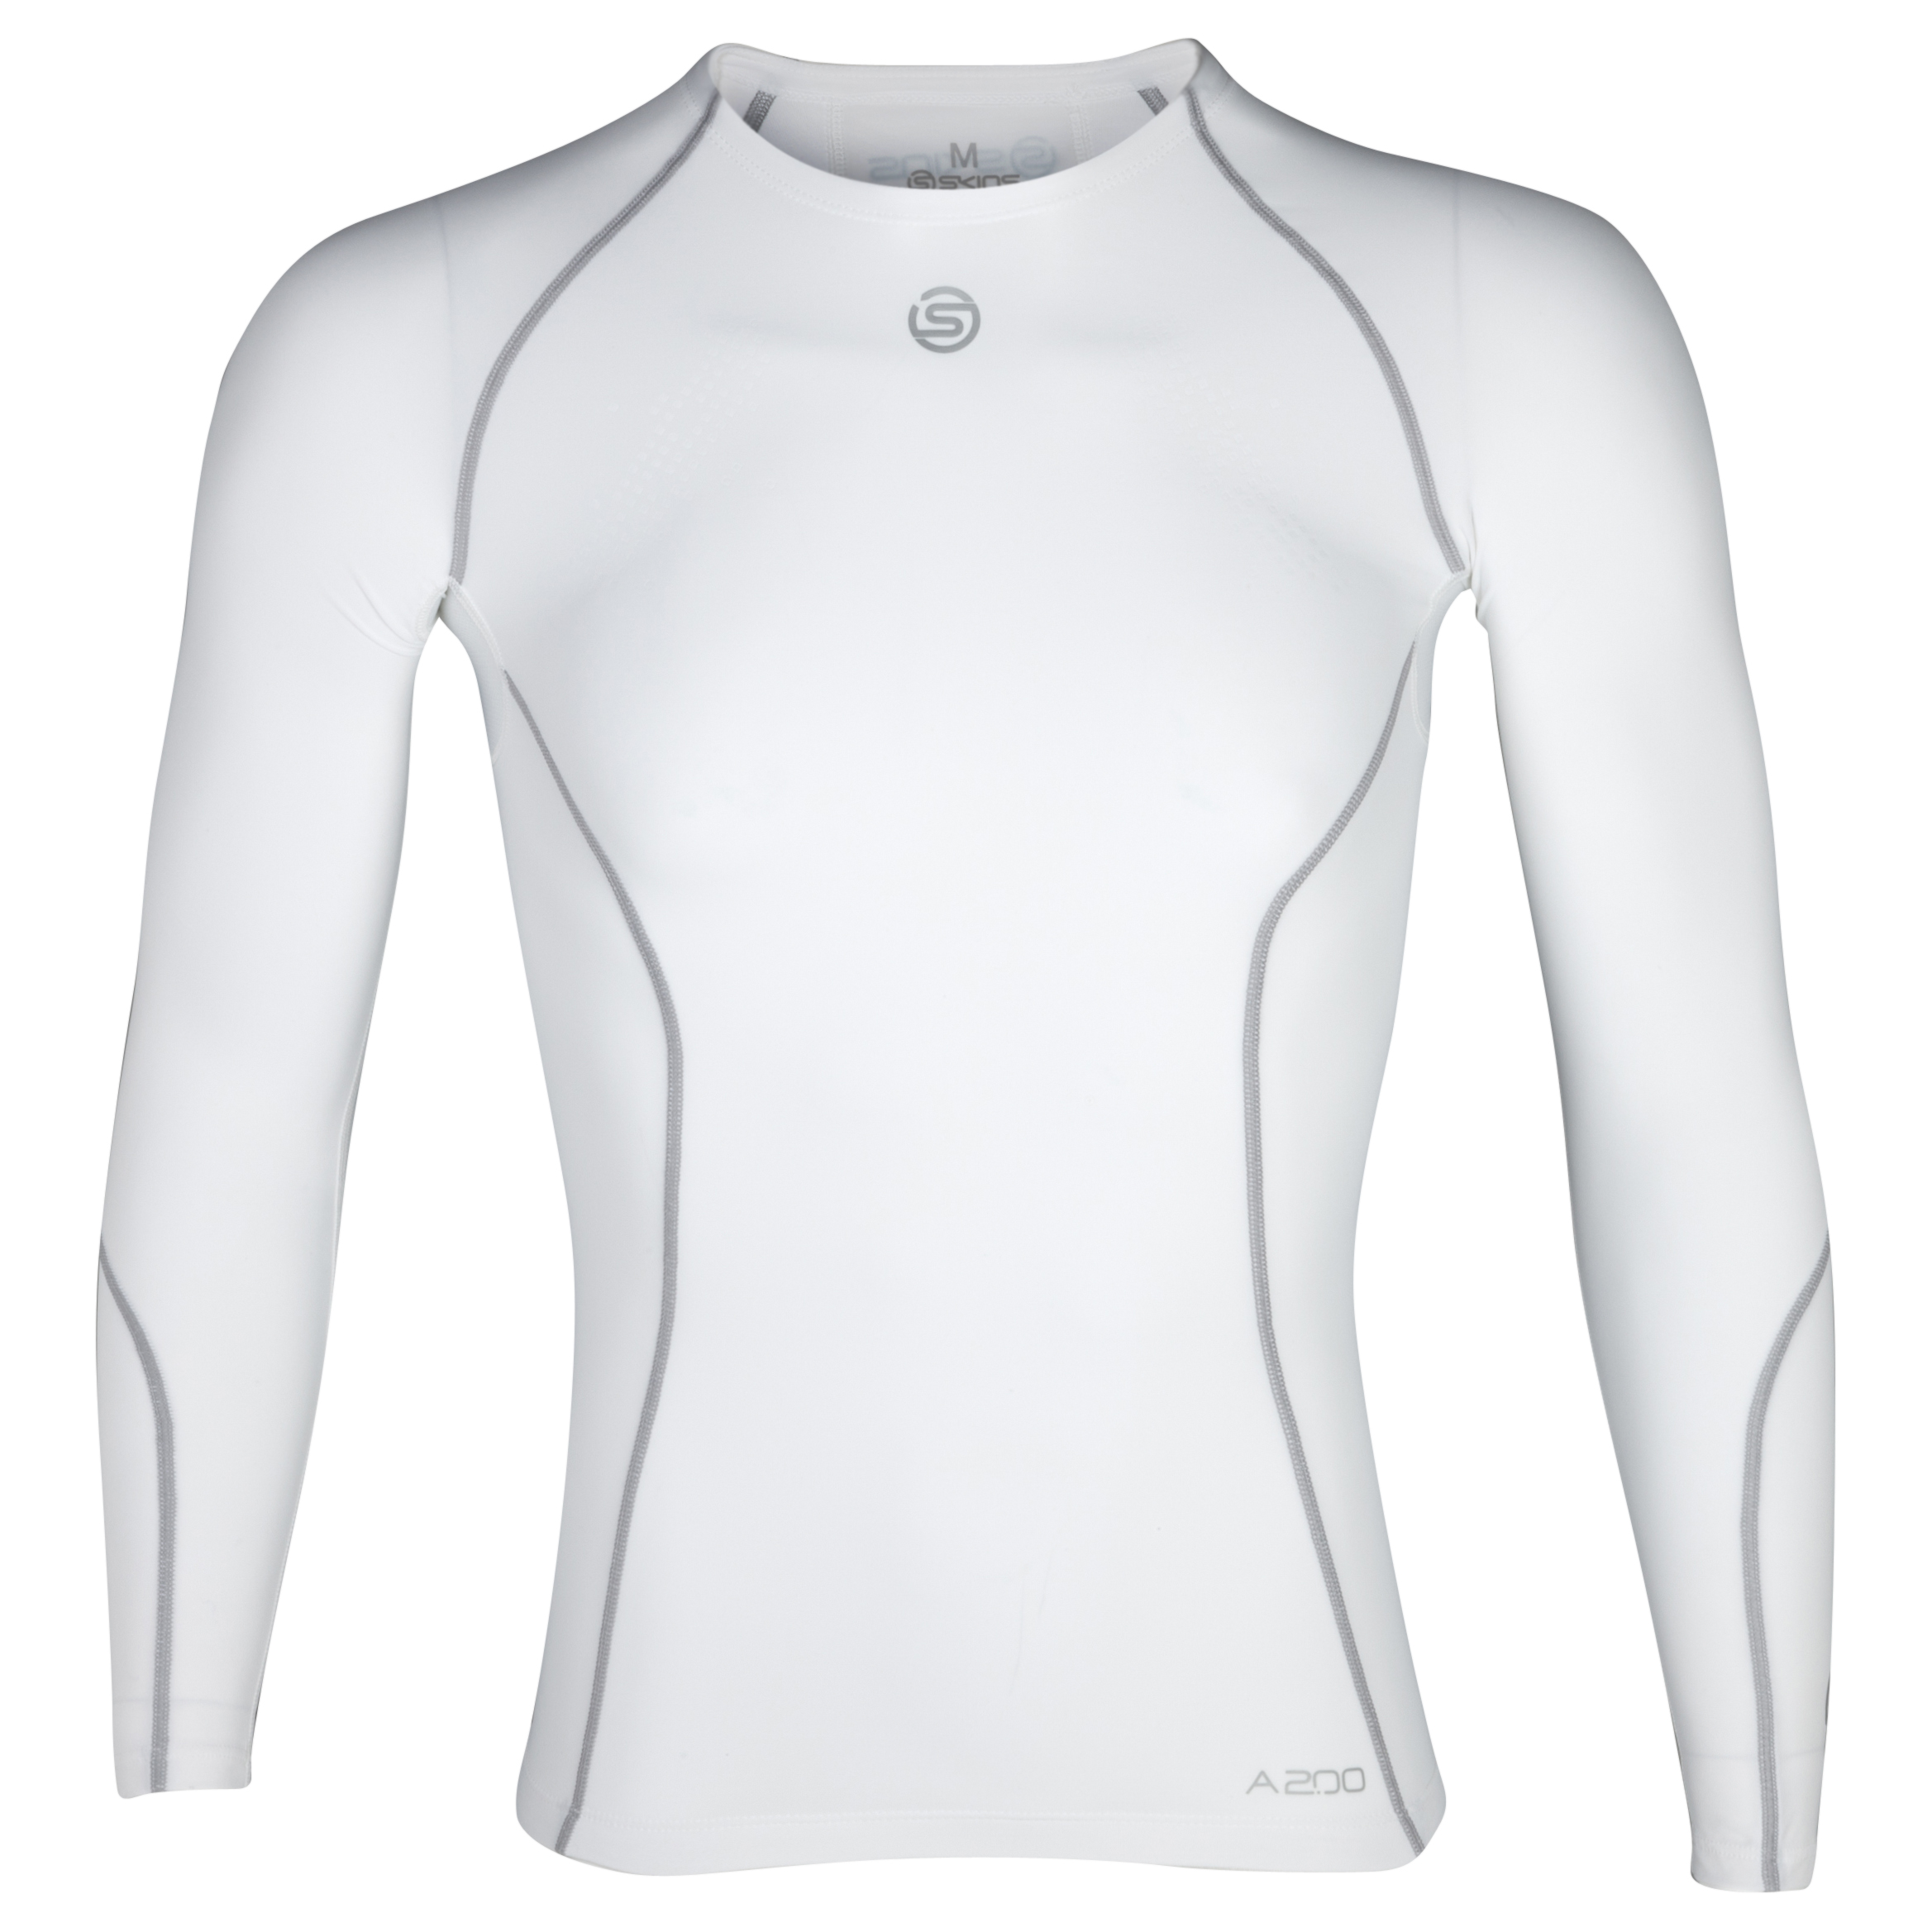 Skins A200 Long Sleeve Top - White - Kids